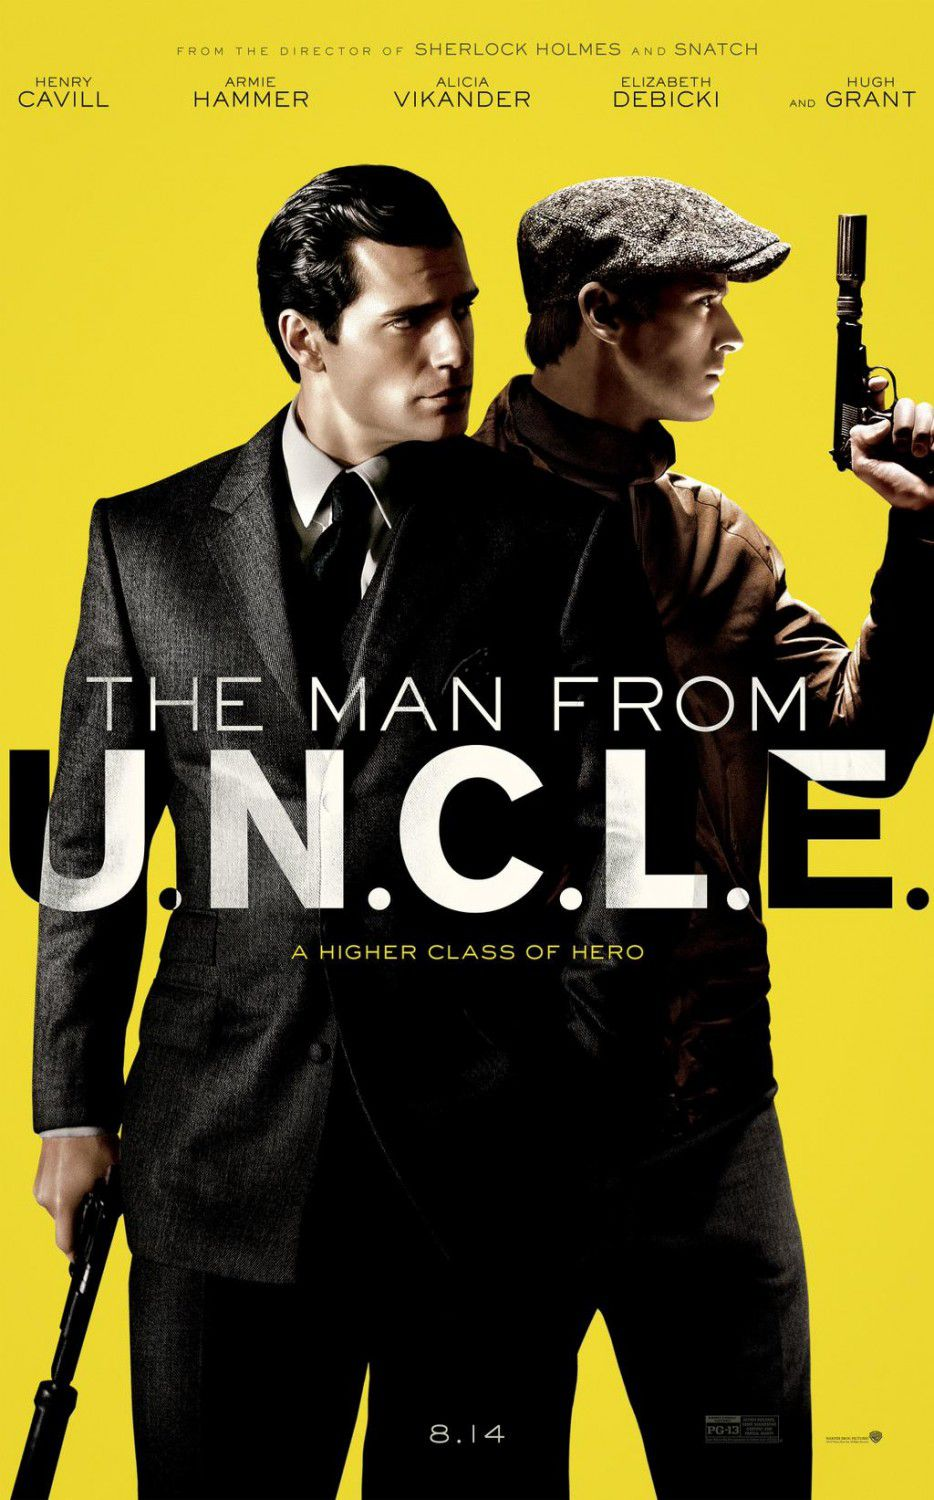 U.N.C.L.E. - Man from UNCLE